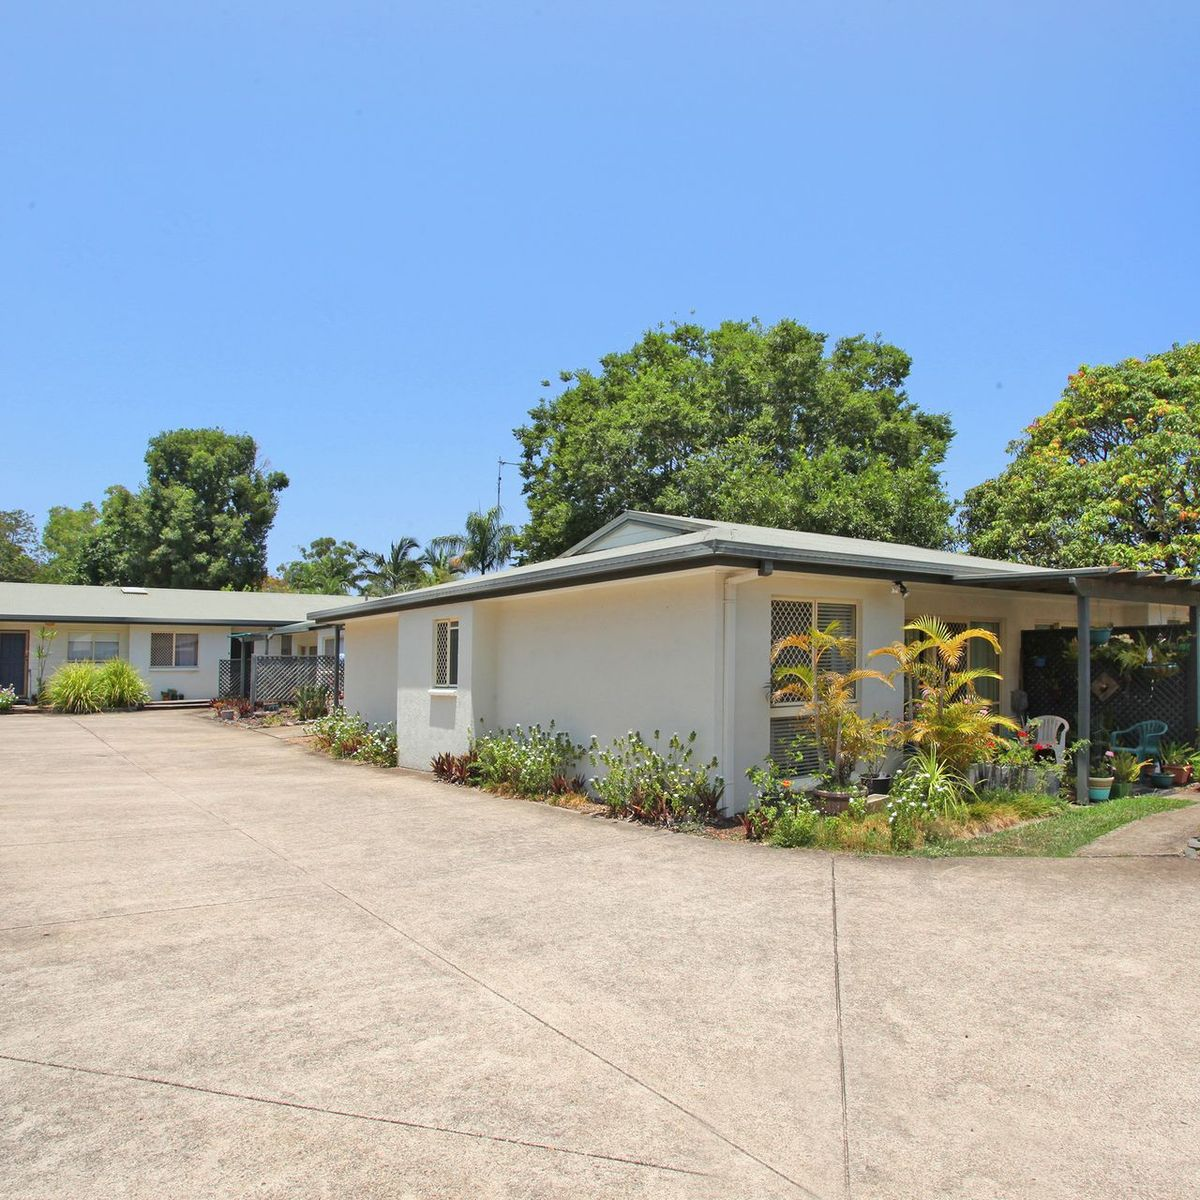 4/51 Arundell Avenue, Nambour, QLD 4560